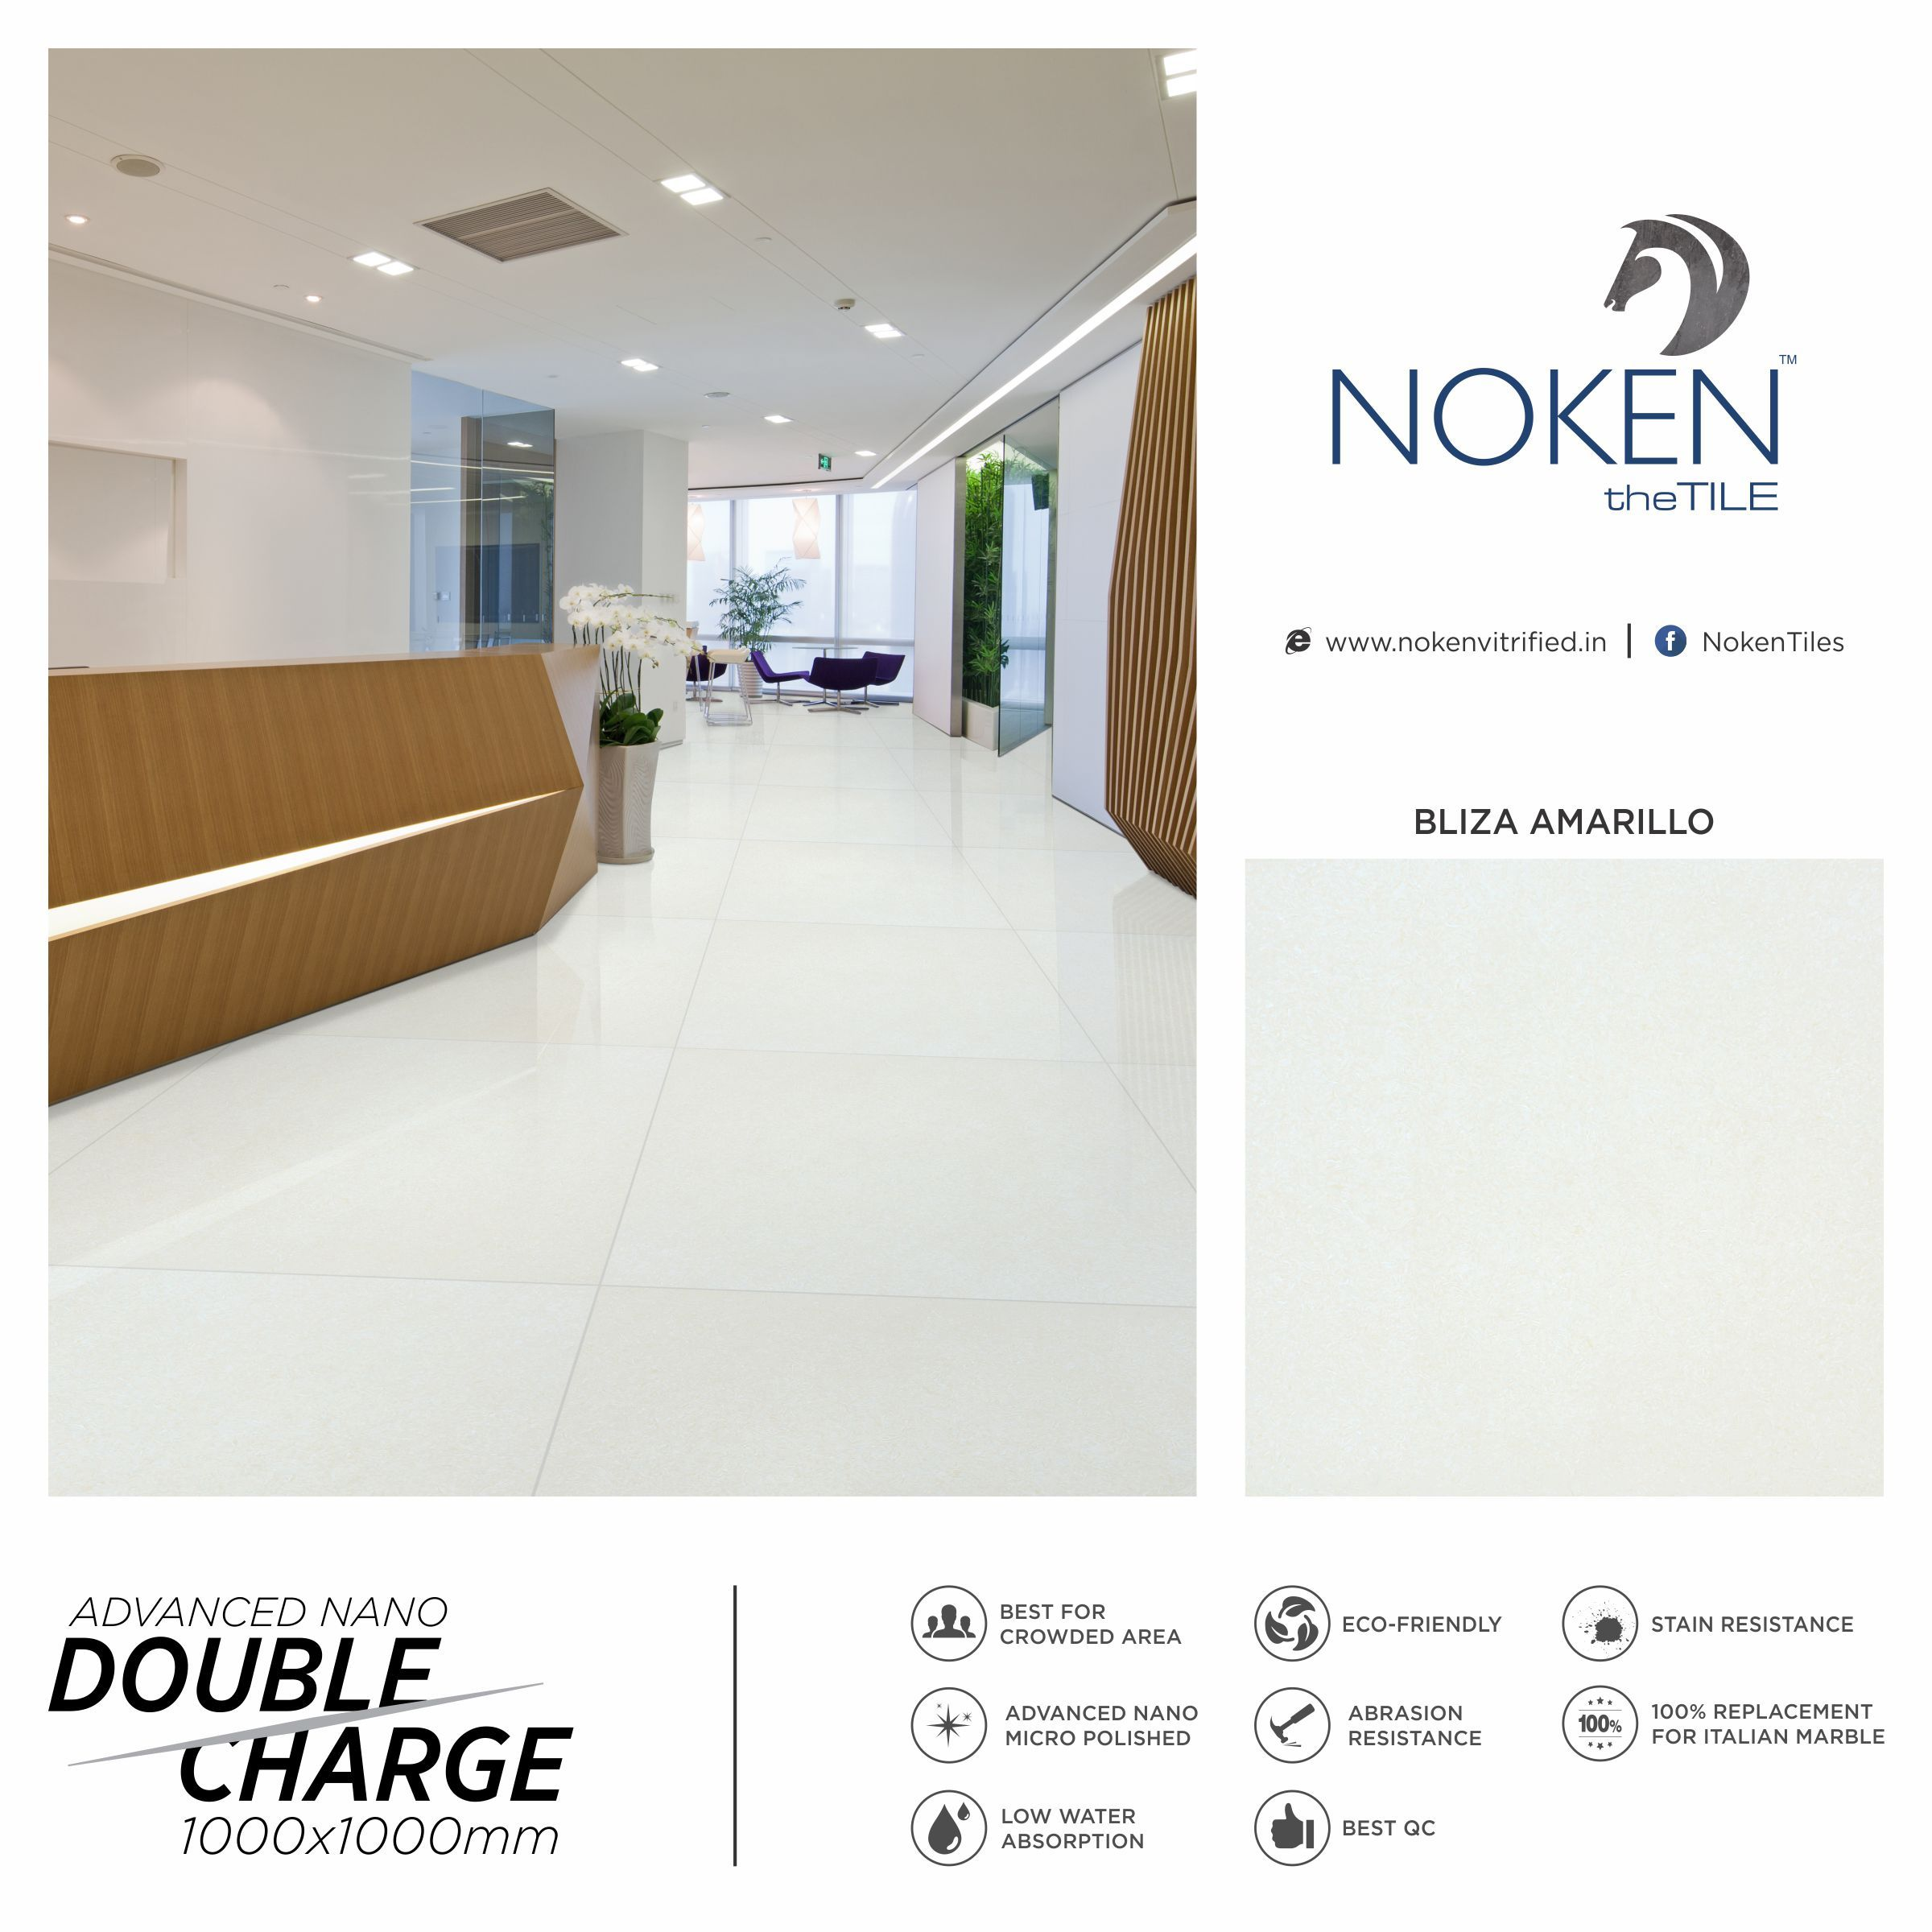 Give your space the panache it deserves by bringing noken tiles give your space the panache it deserves by bringing noken tiles noken ceramic dailygadgetfo Gallery